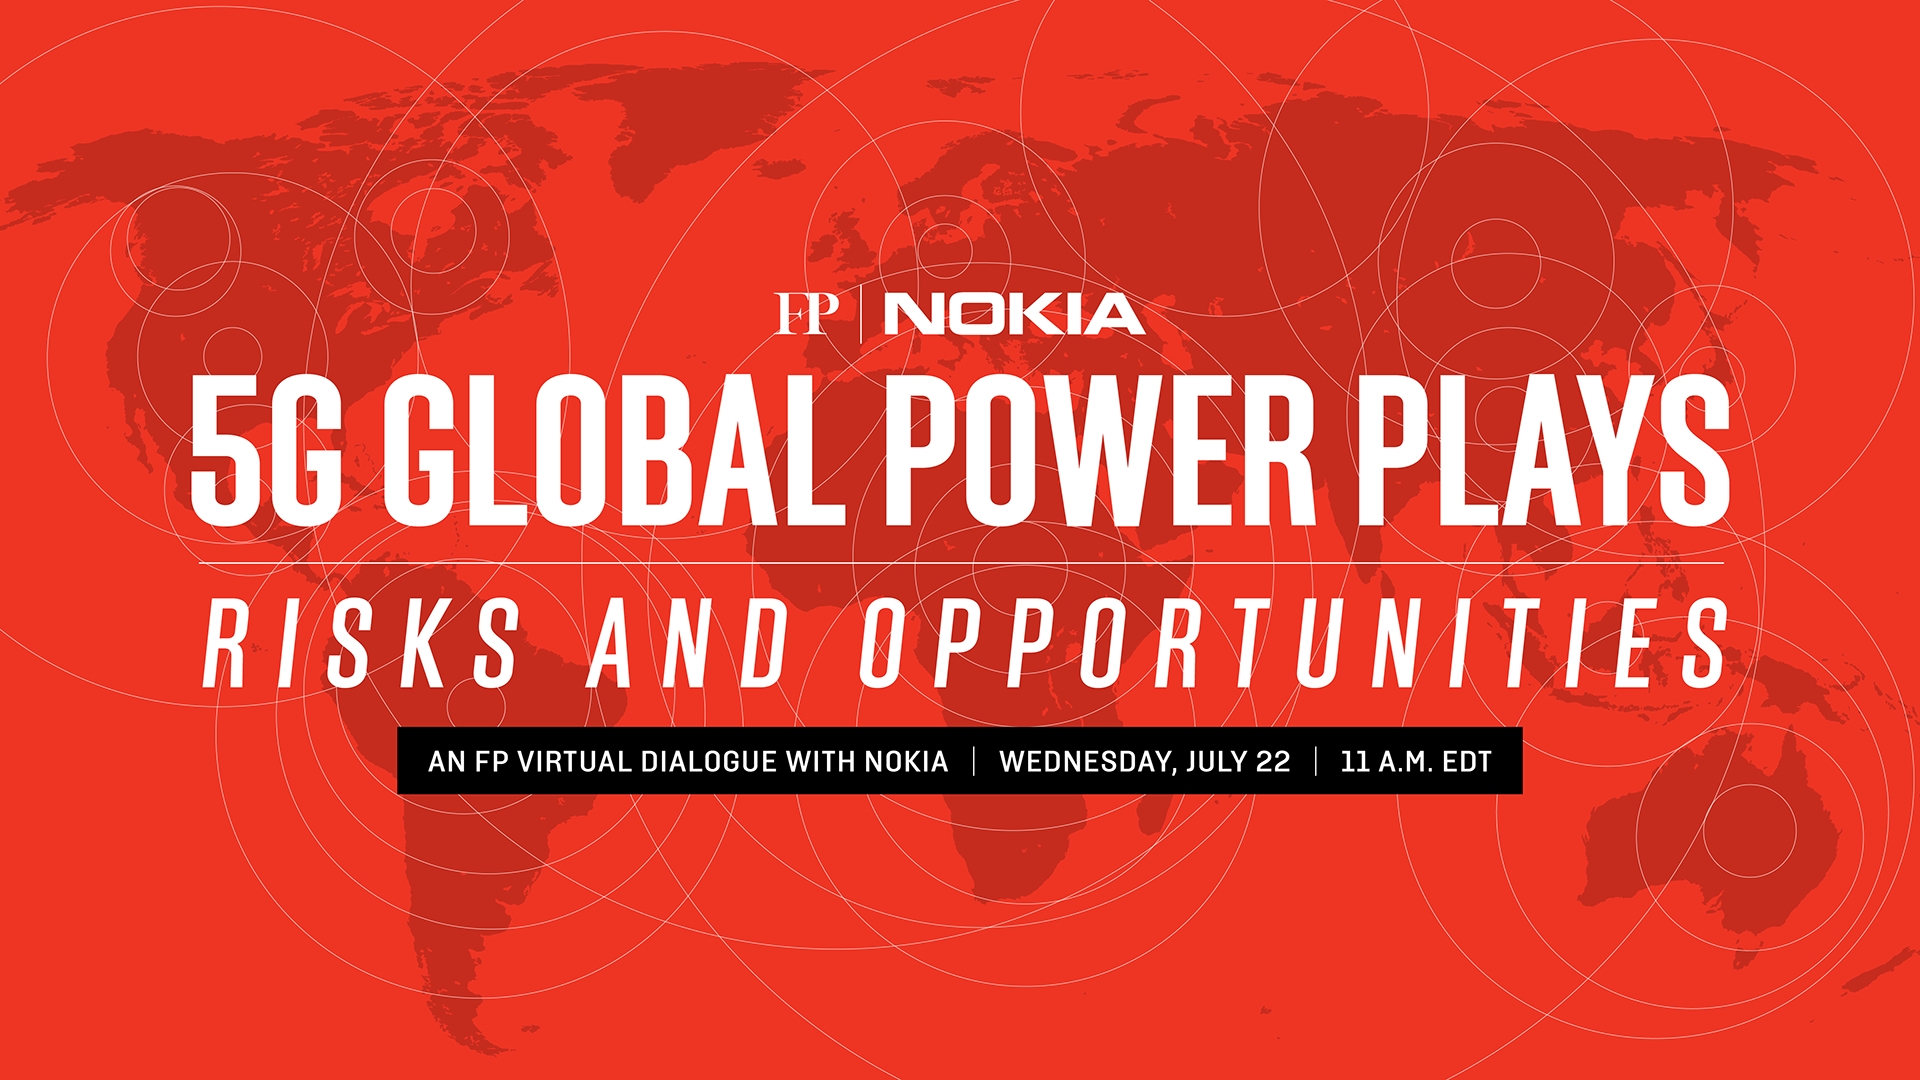 Join FP and Nokia for our upcoming Virtual Dialogue: 5G Global Power Plays on July 22 at 11:00 EDT